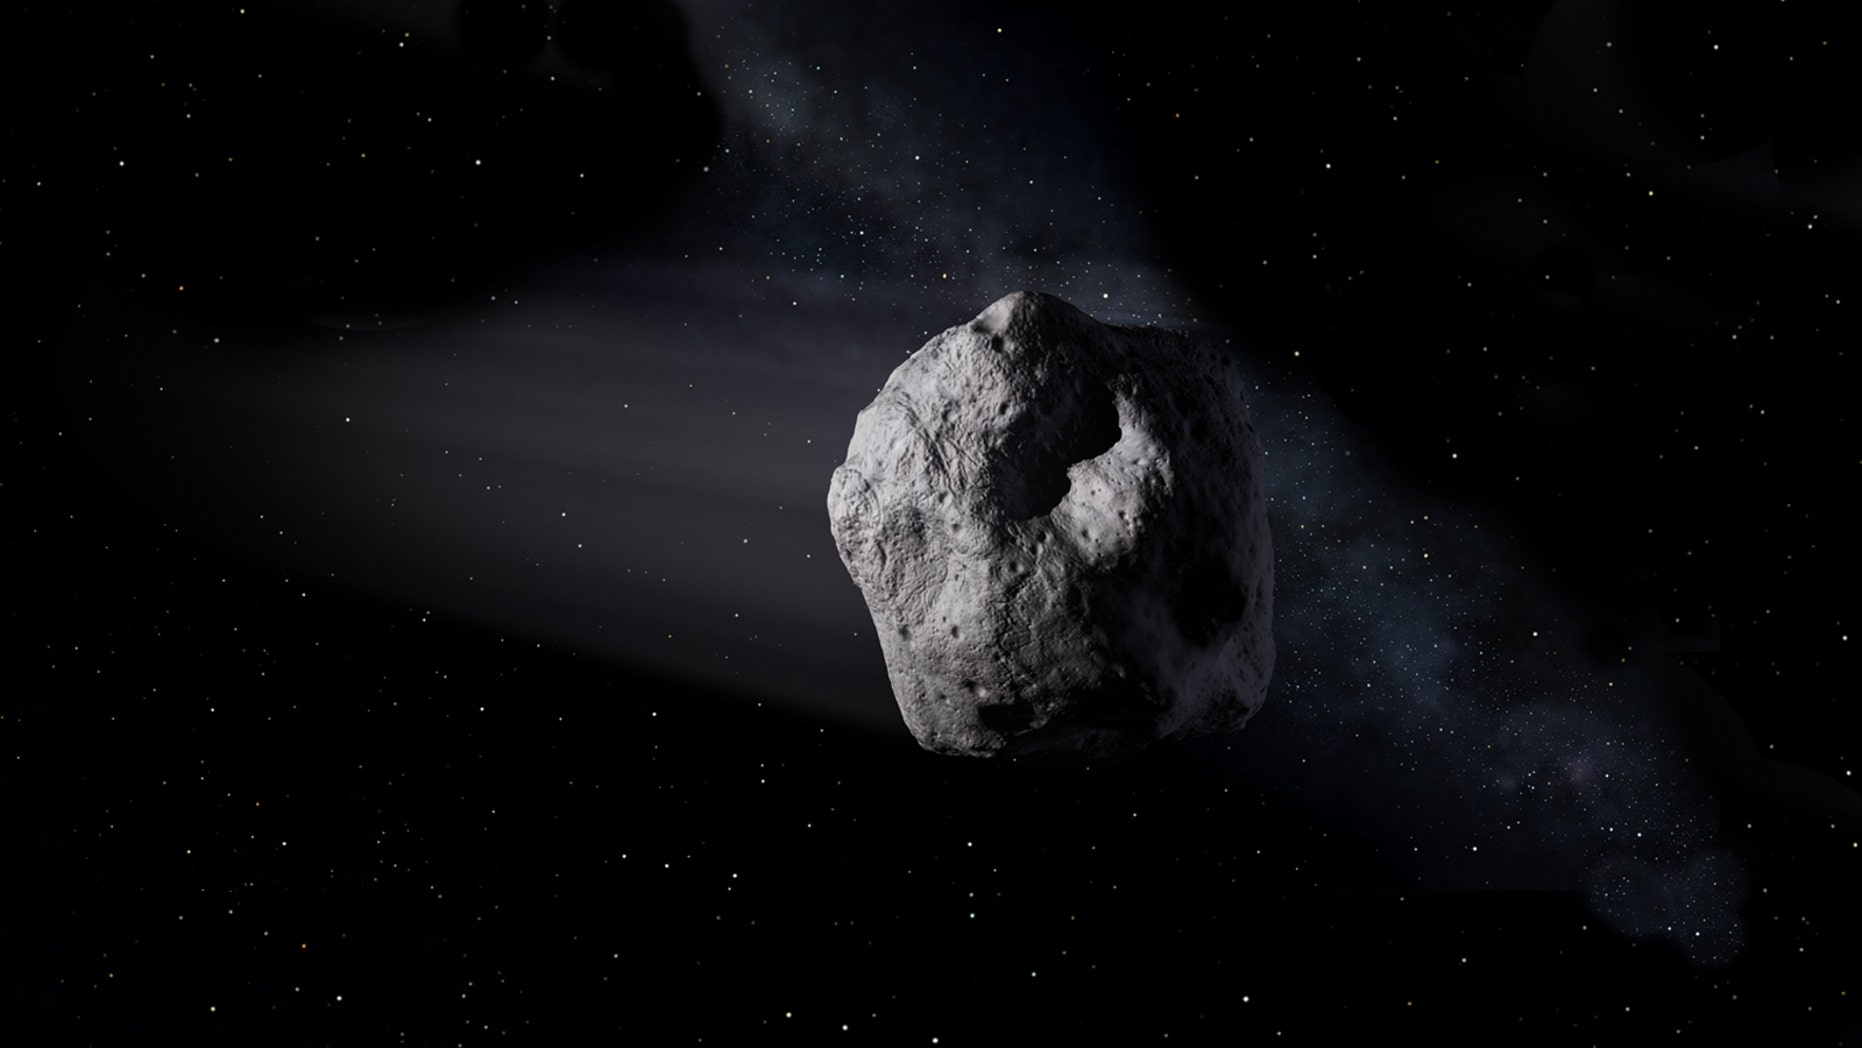 A near-Earth object on course to hit the planet would require nationwide or global coordination to minimize threat.